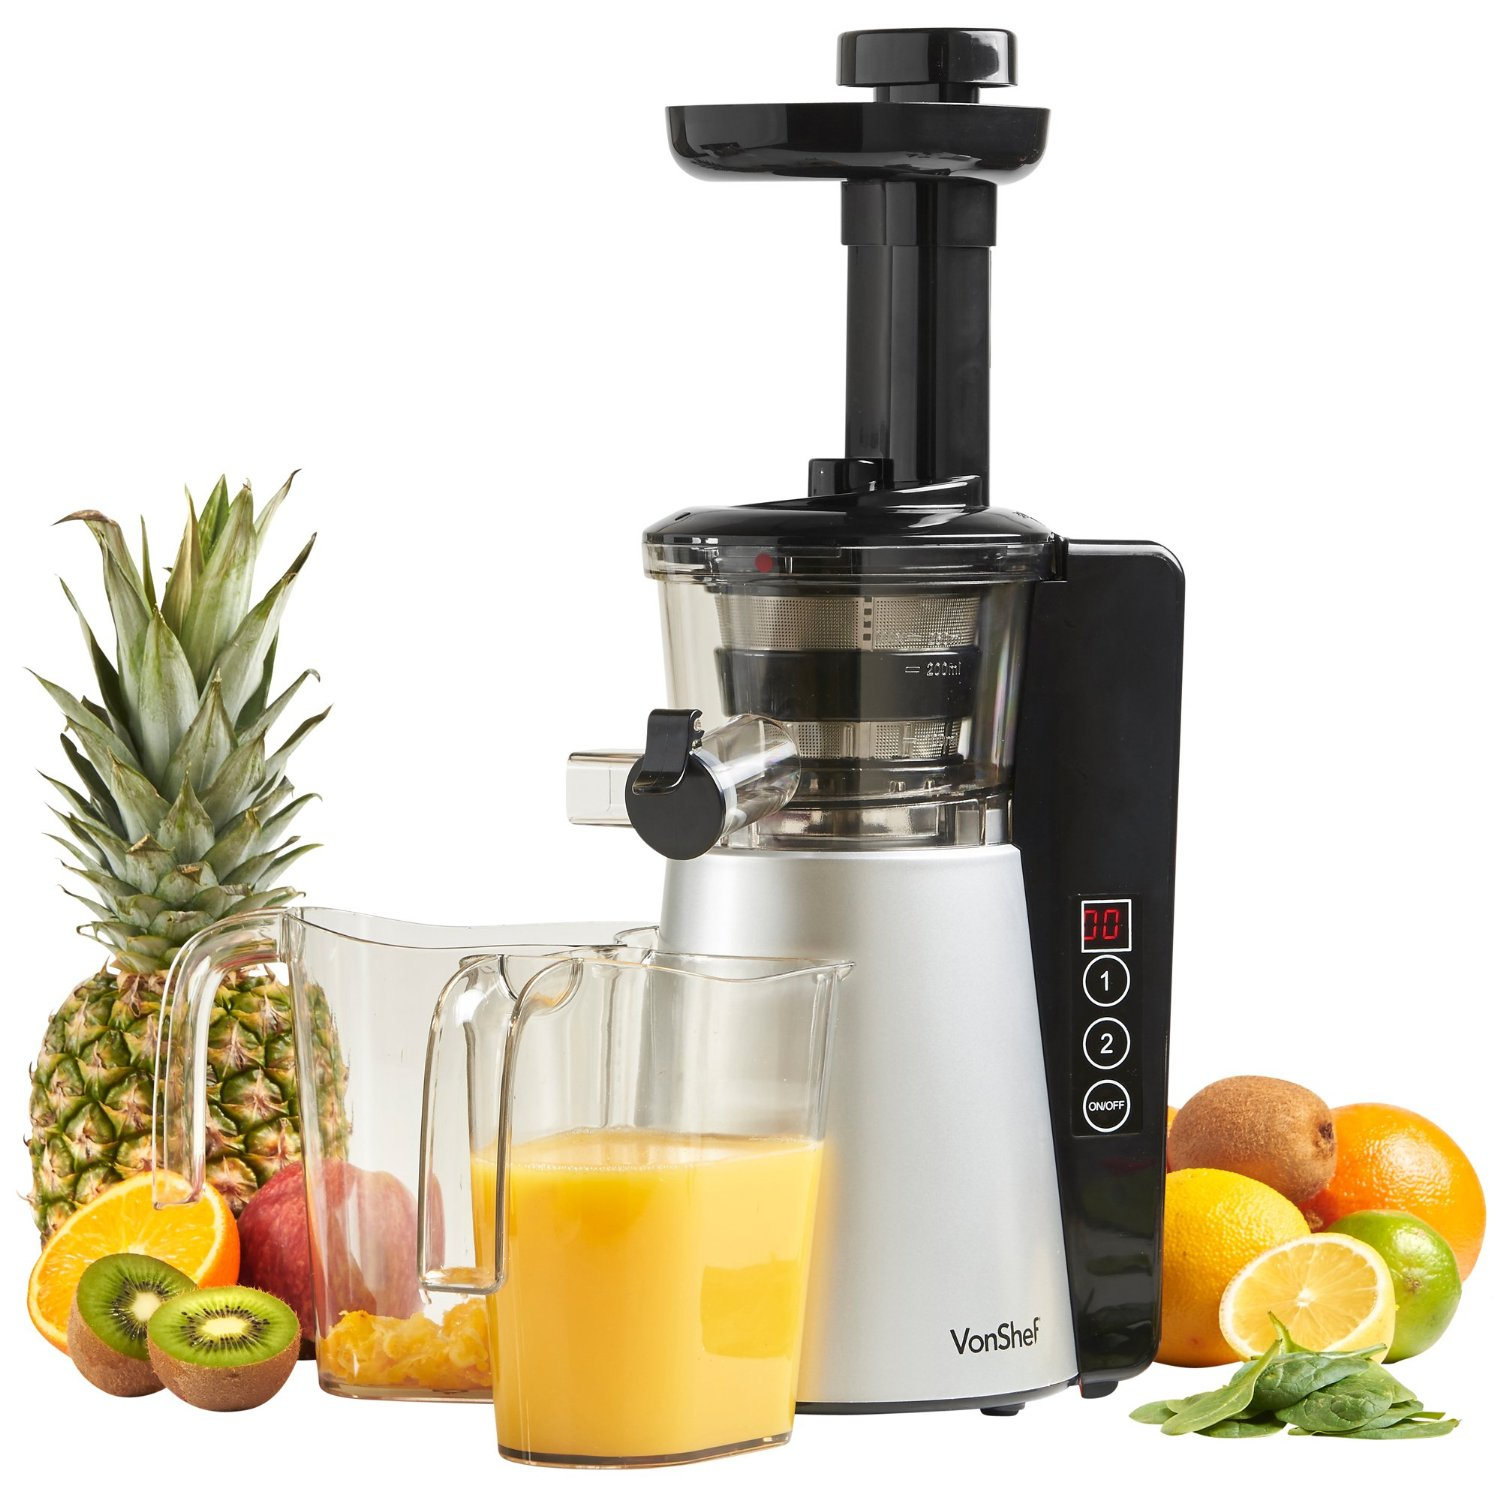 Vonshef Digital Slow Masticating Juicer Review